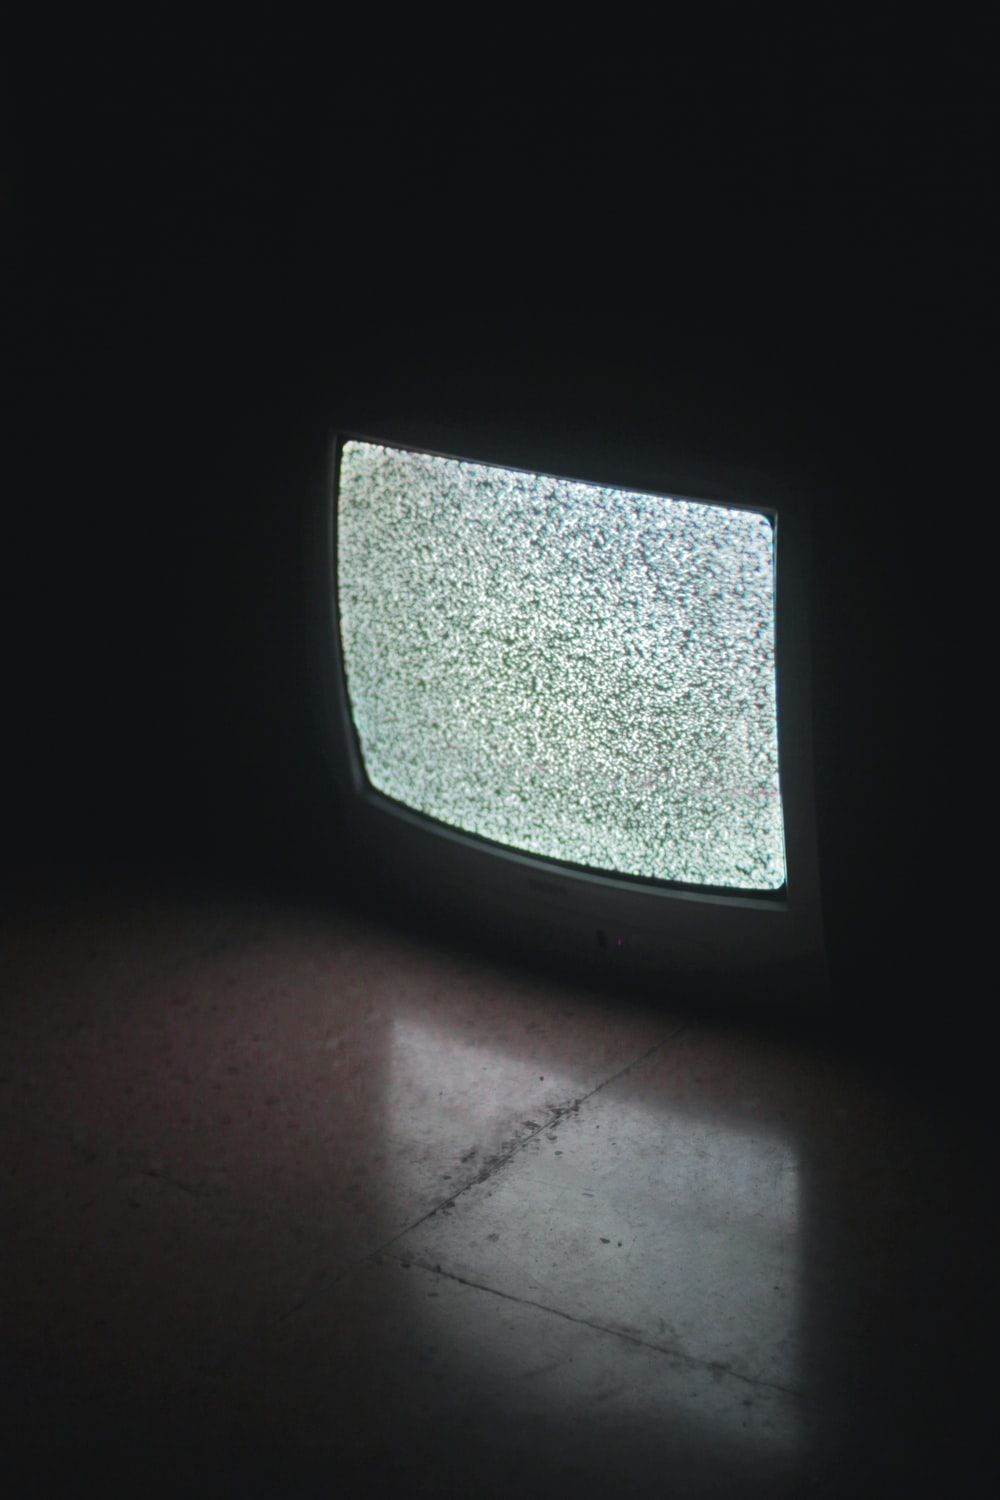 gray crt tv turned on in a dark room